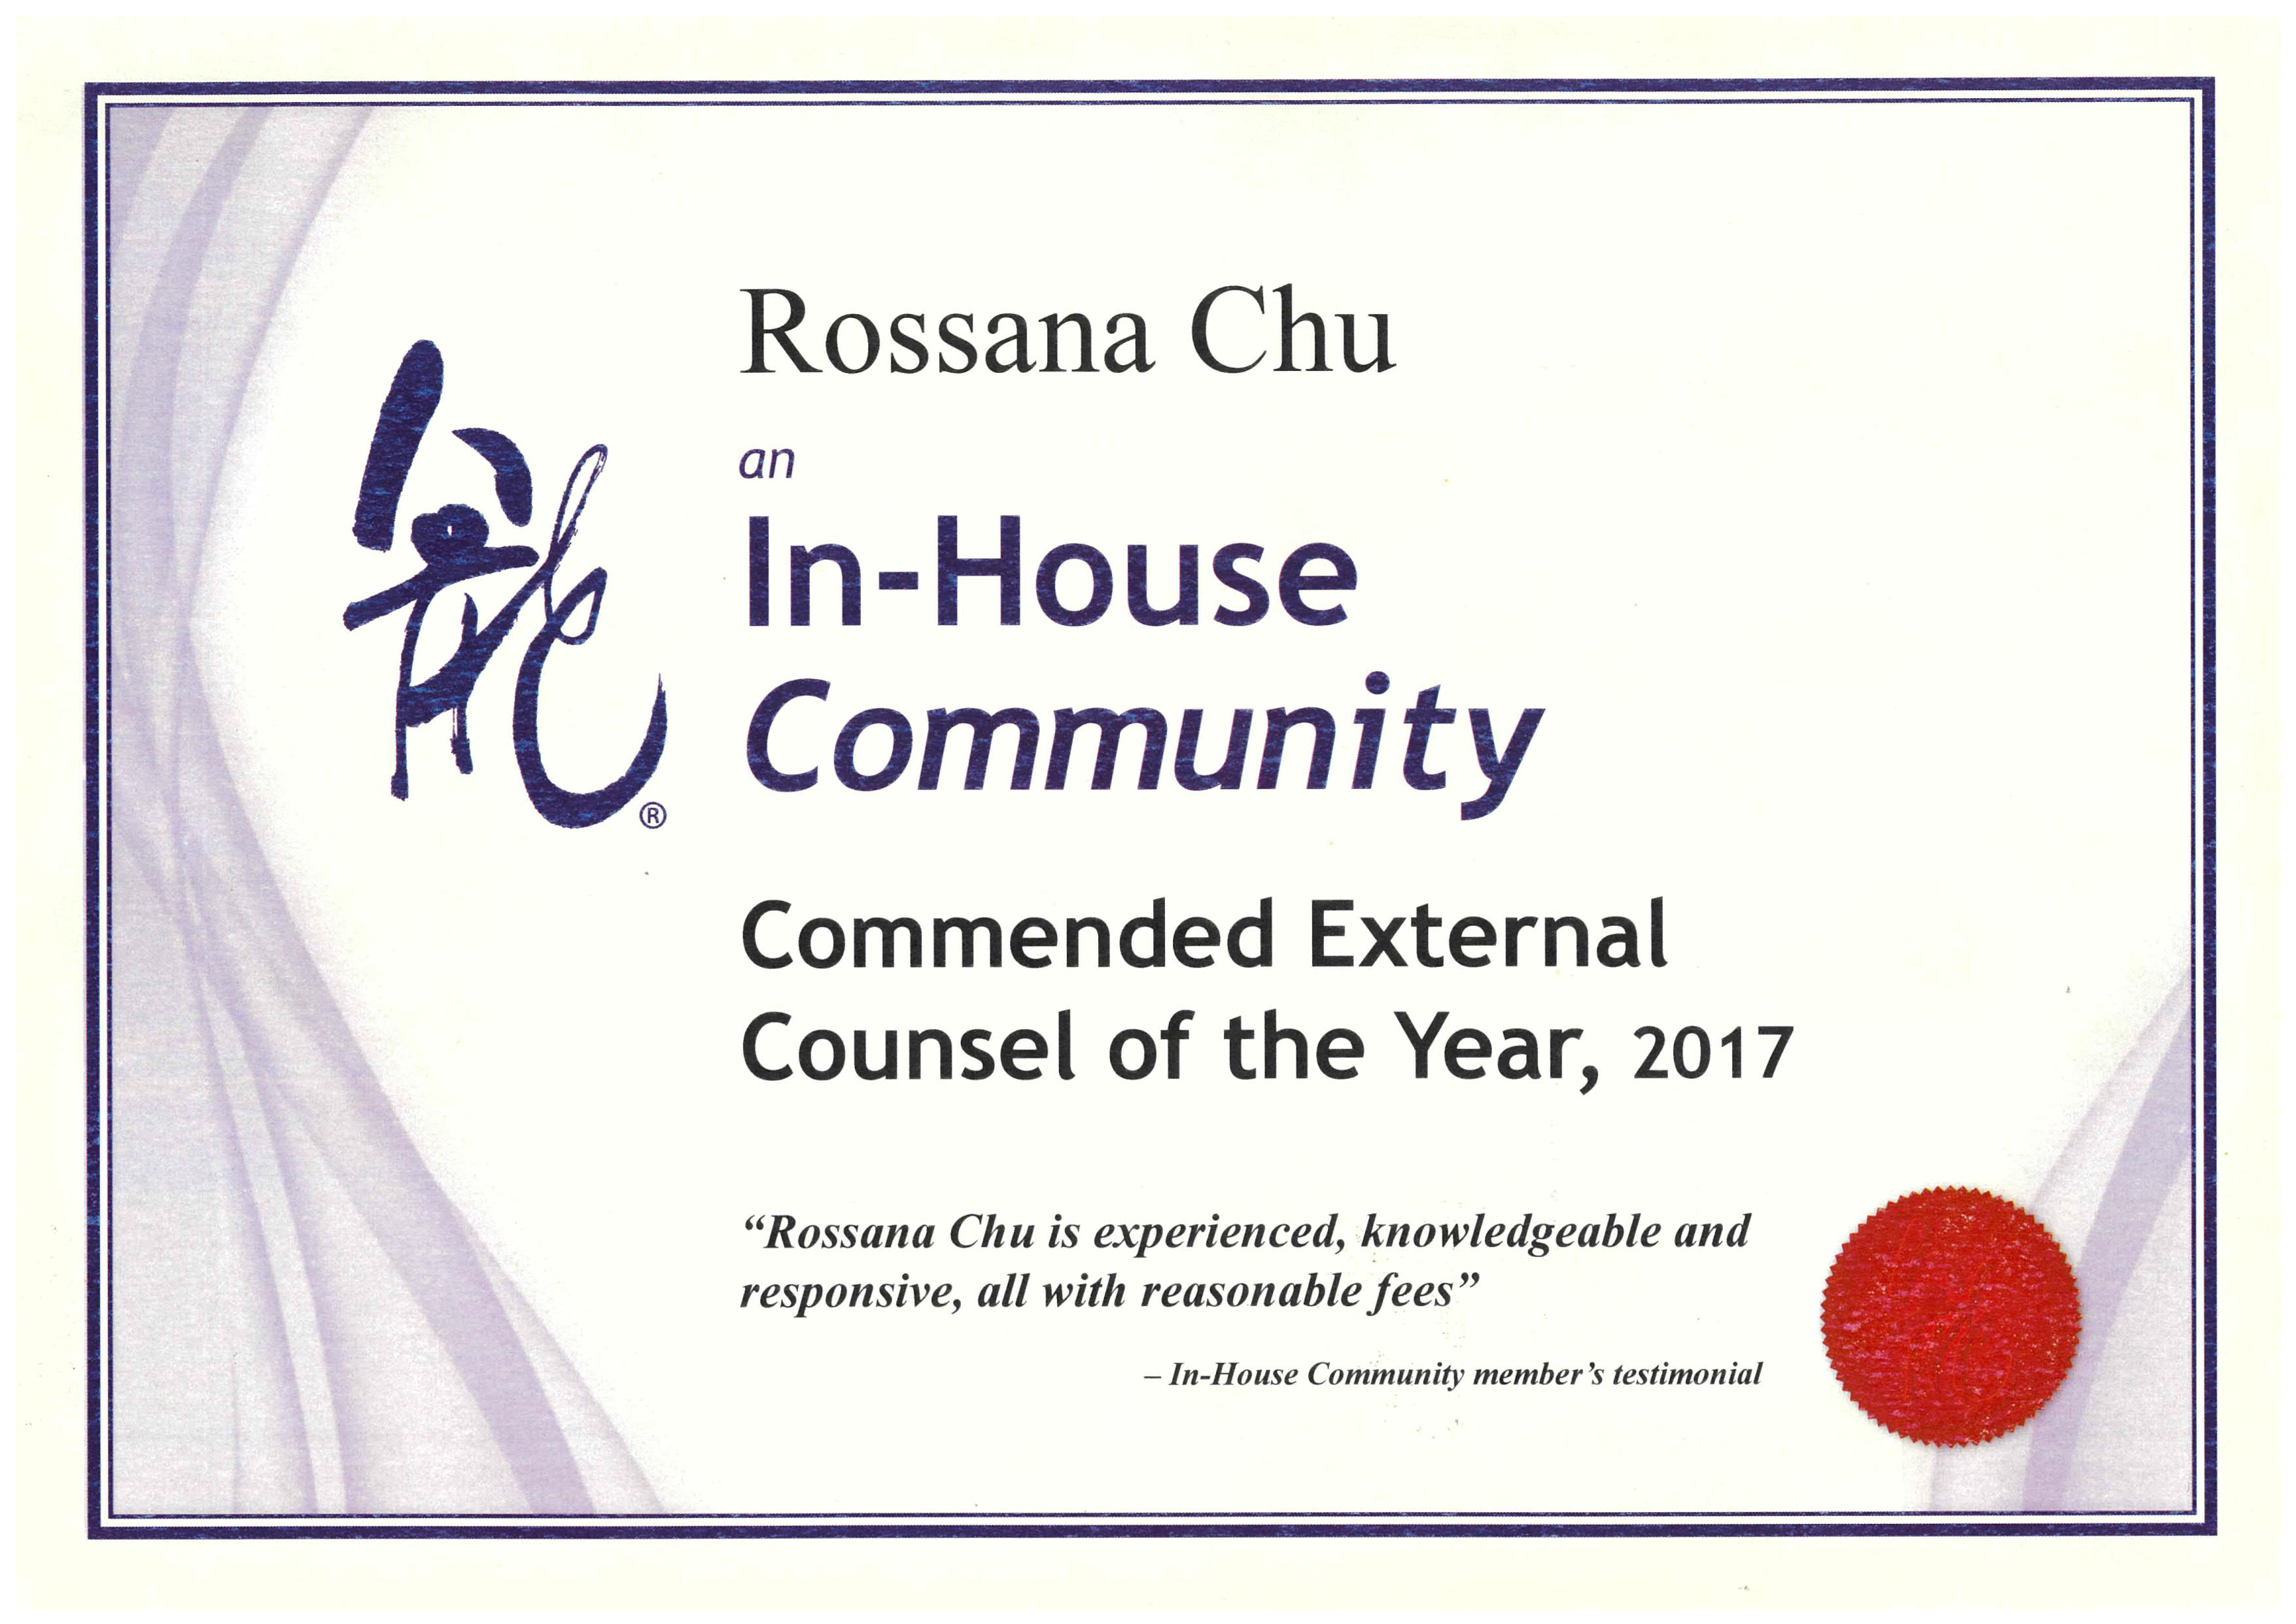 Commended External Counsel of the Year as named by the In-House Community, LC Lawyers LLP, Rossana Chu, 2017